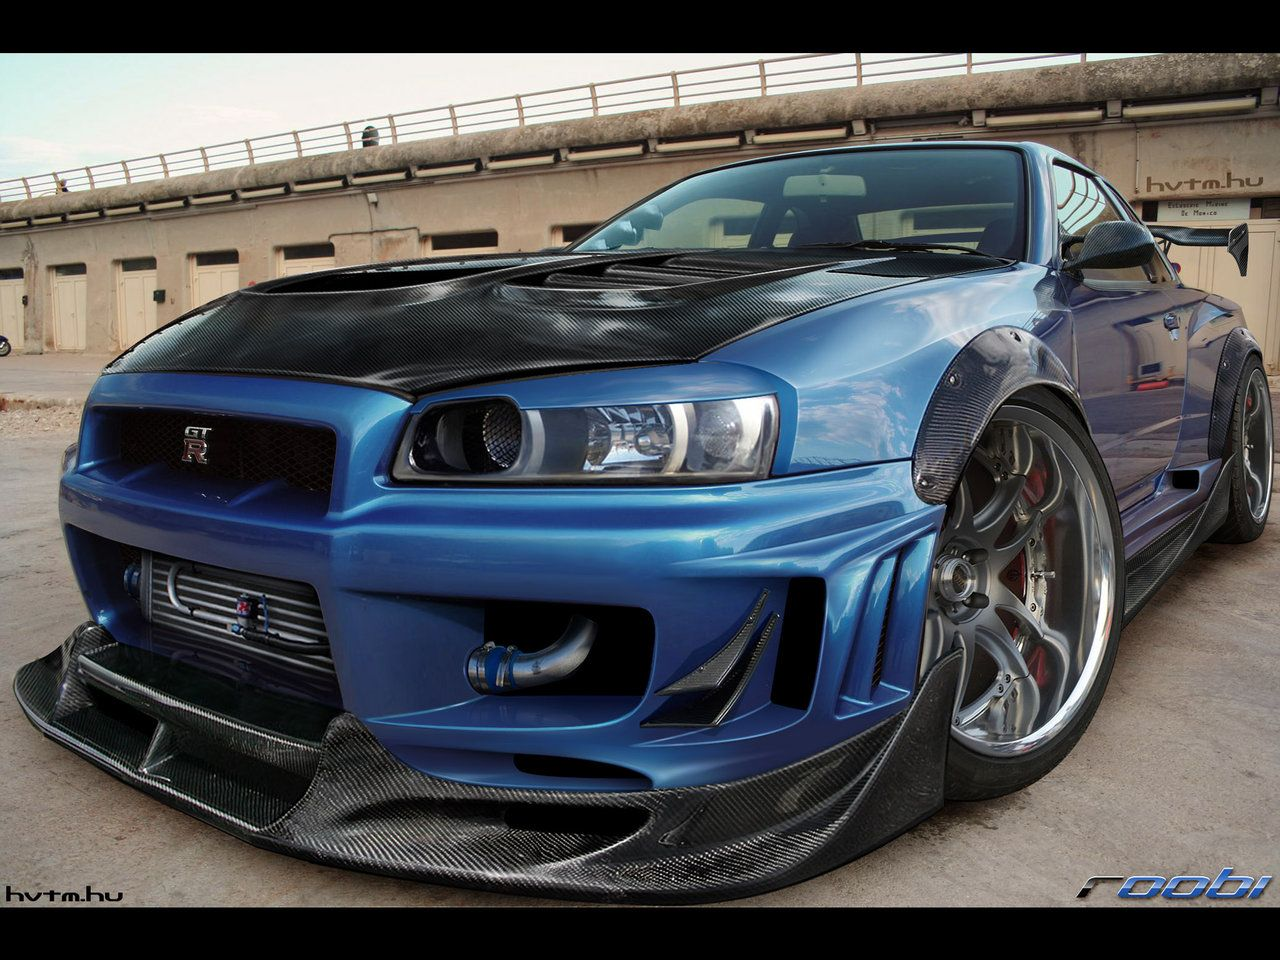 cool cars nissan r34 gt r virtual tuning skyline. Black Bedroom Furniture Sets. Home Design Ideas